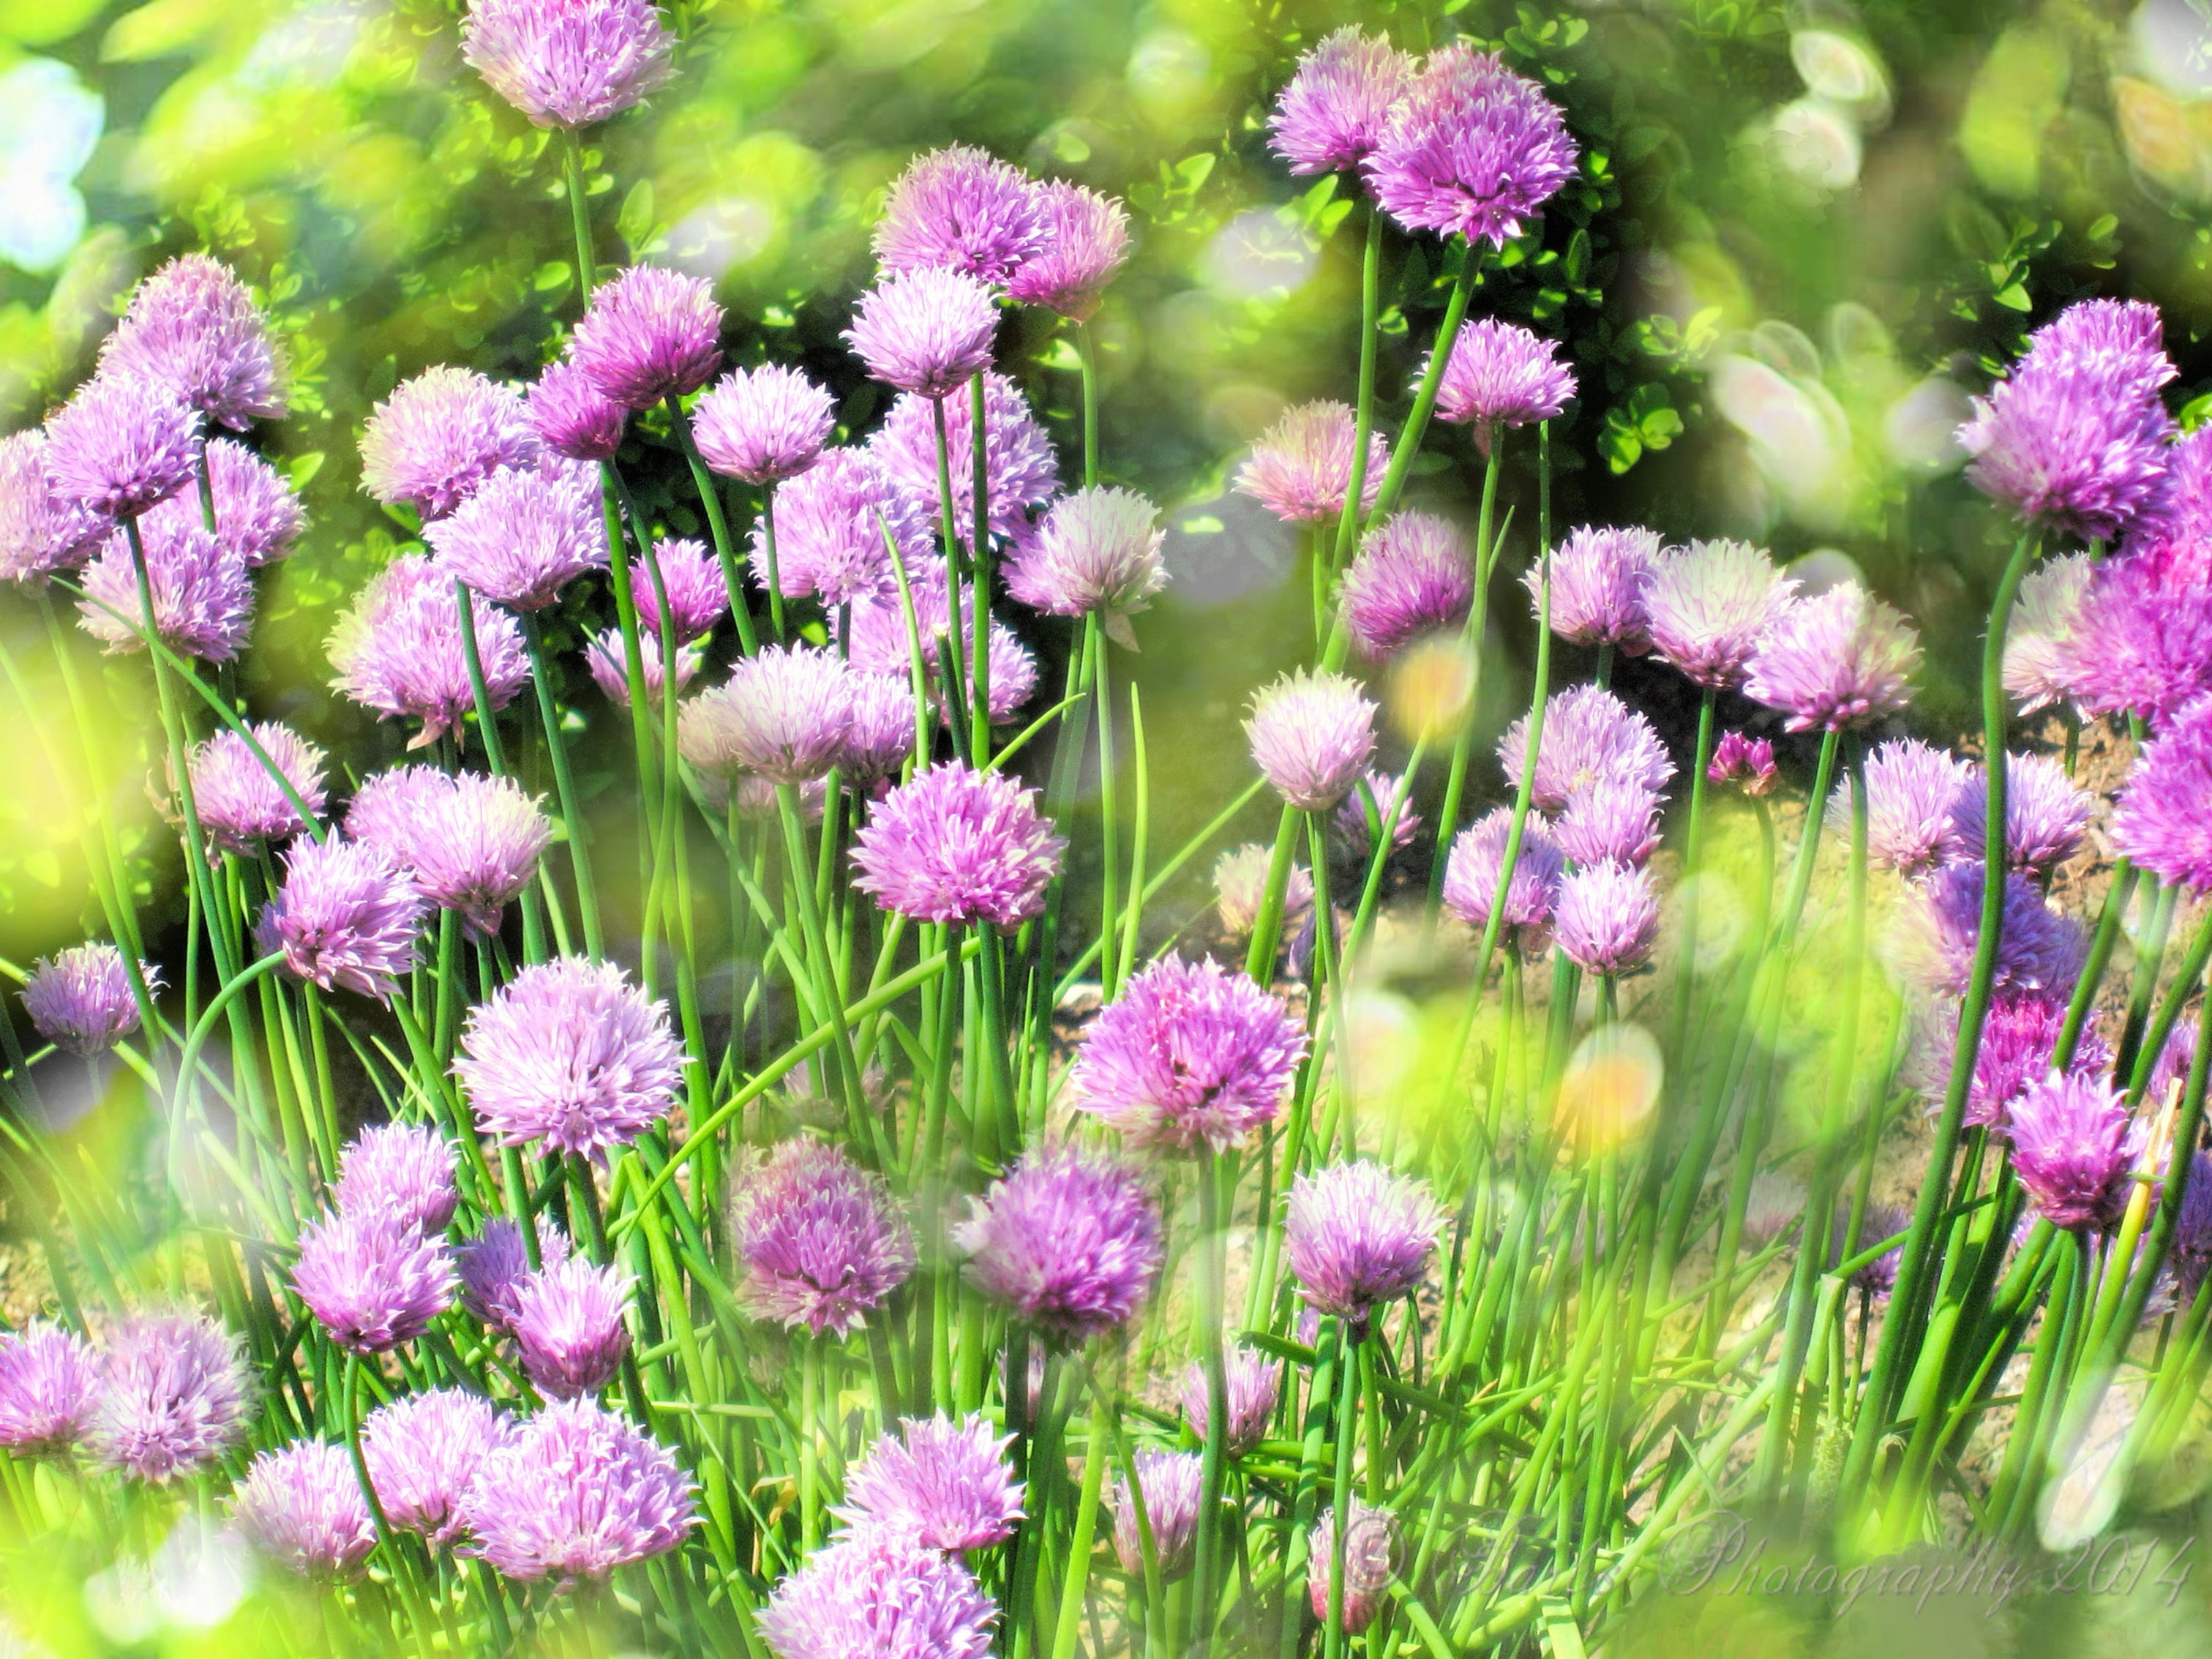 Herbs and flowers often found in roman gardens.